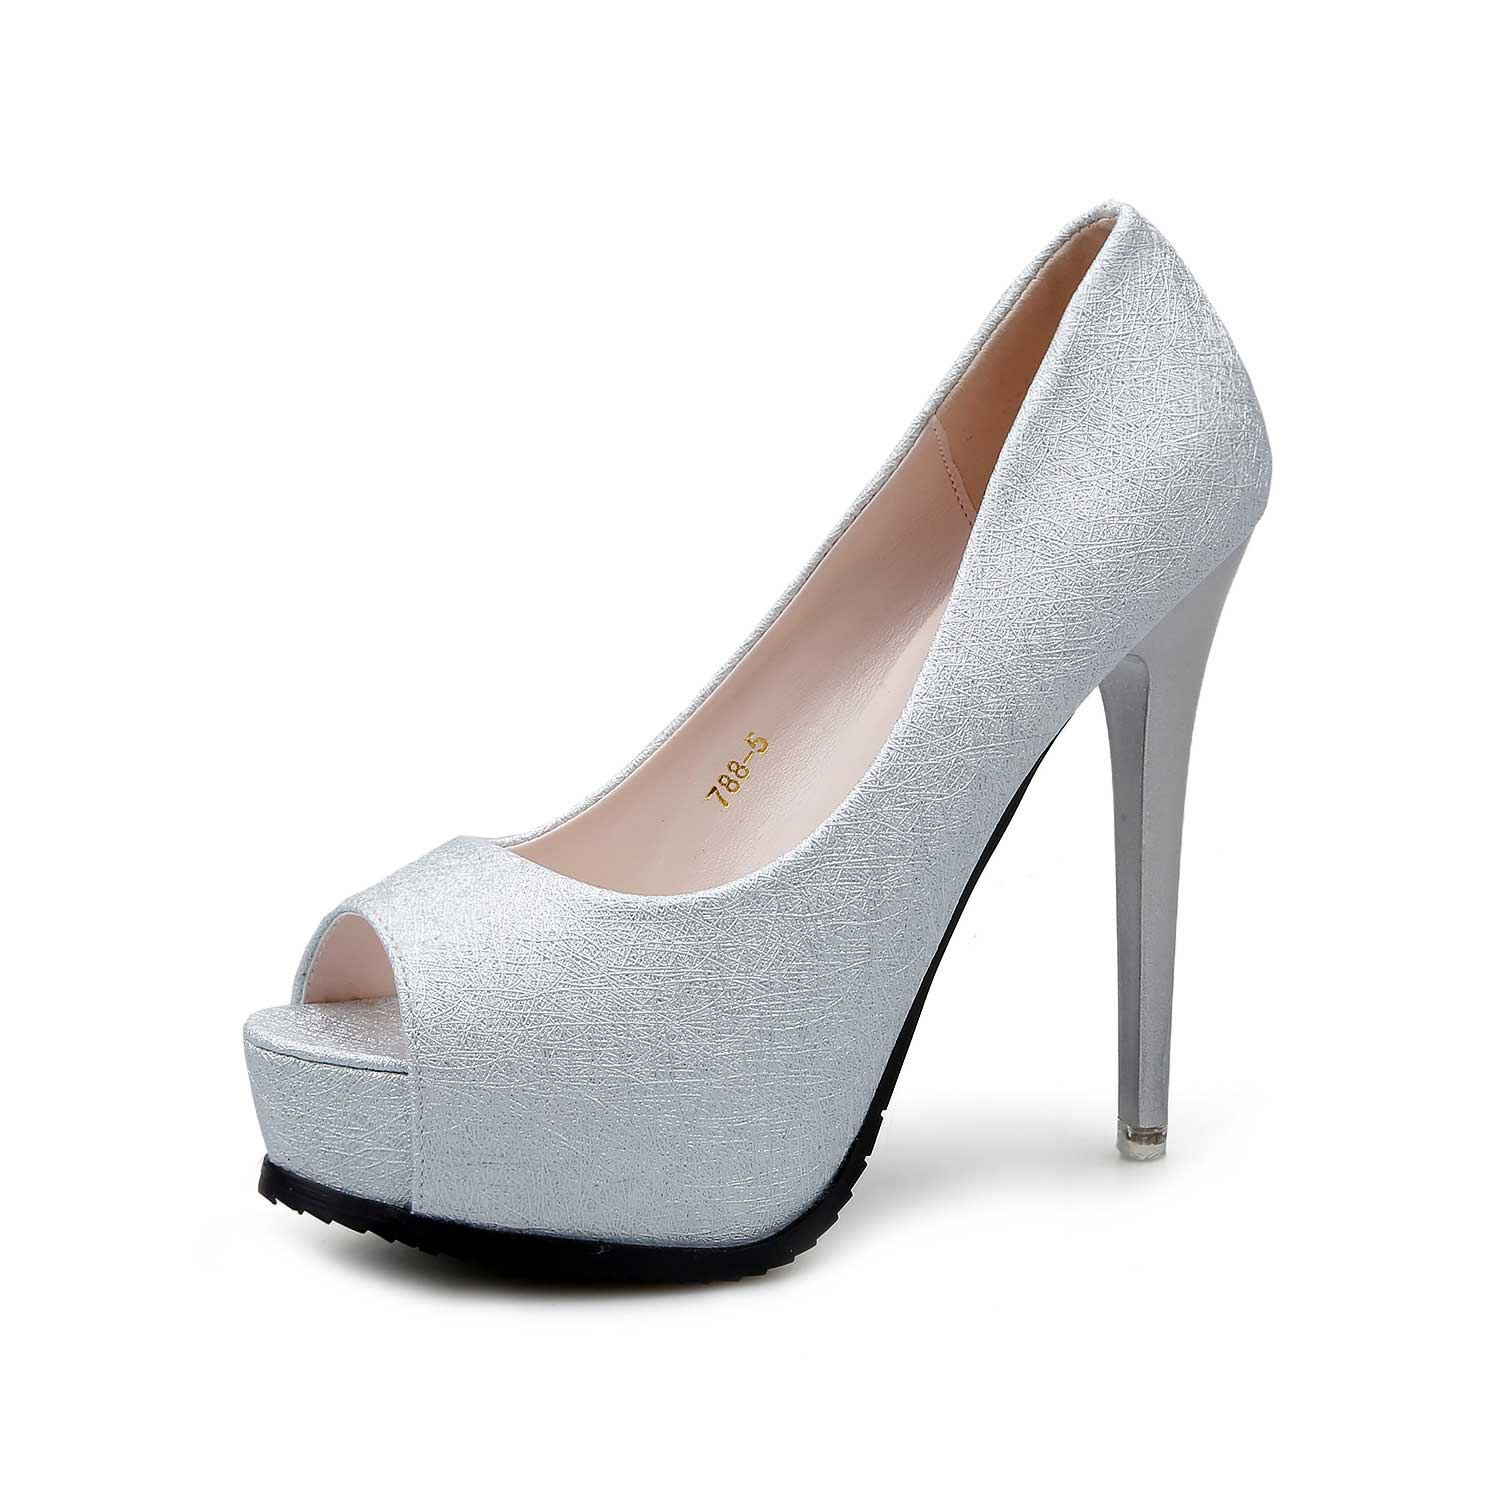 Silver Platform Peep Toe Fish Mouse Prom Shoes Stiletto Heels ...